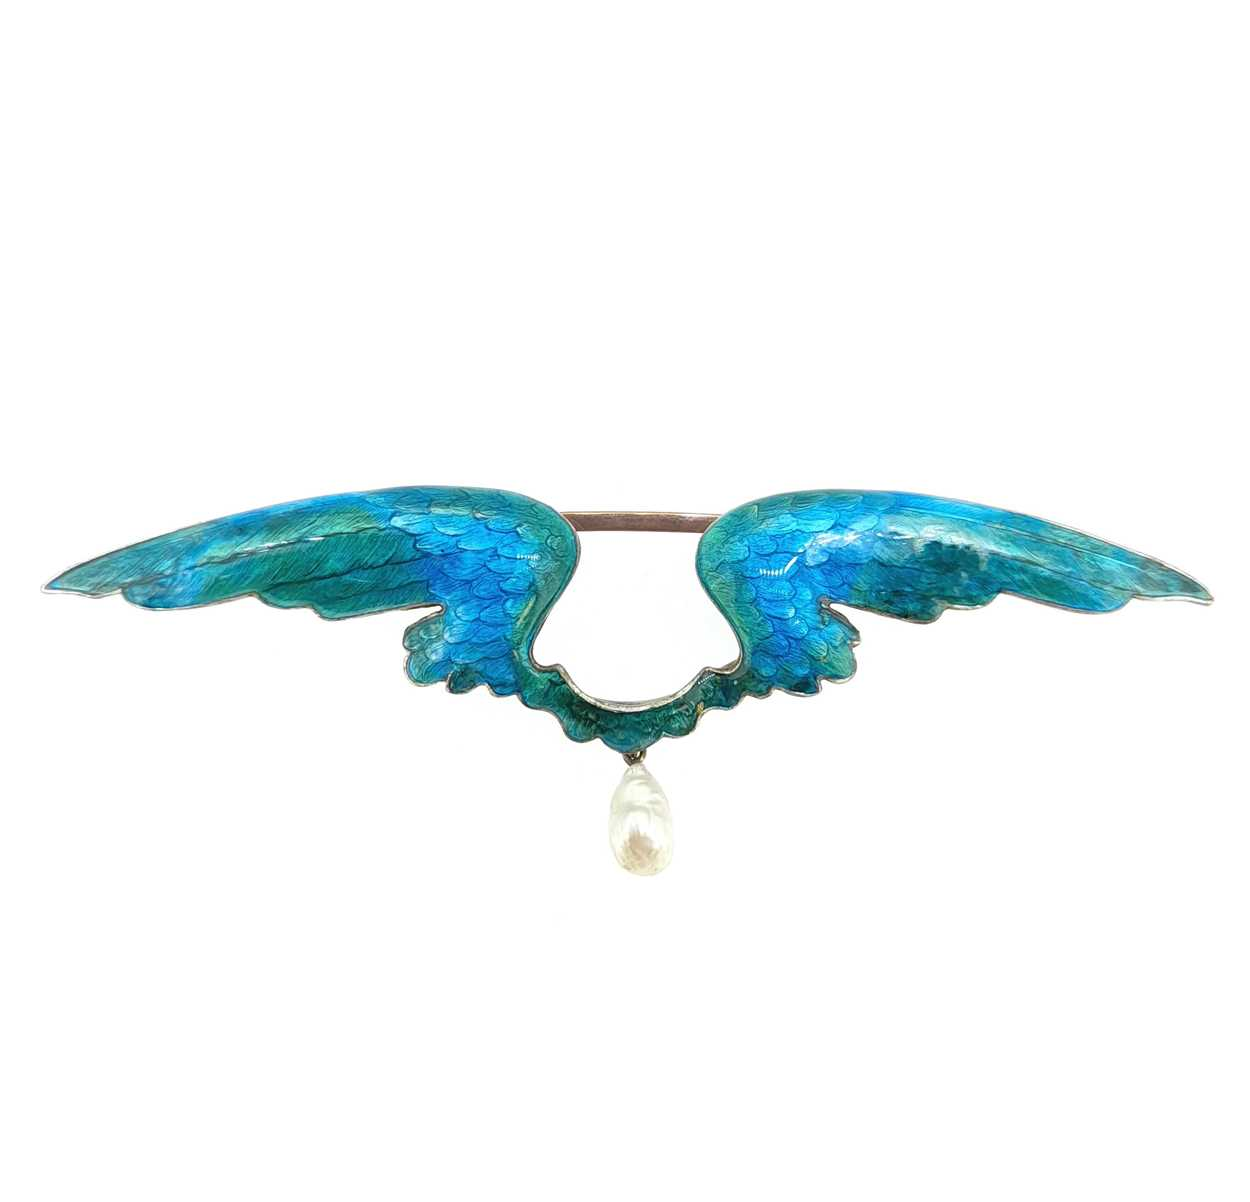 Child & Child - An Art Nouveau pearl and enamel wings brooch, - Image 2 of 4